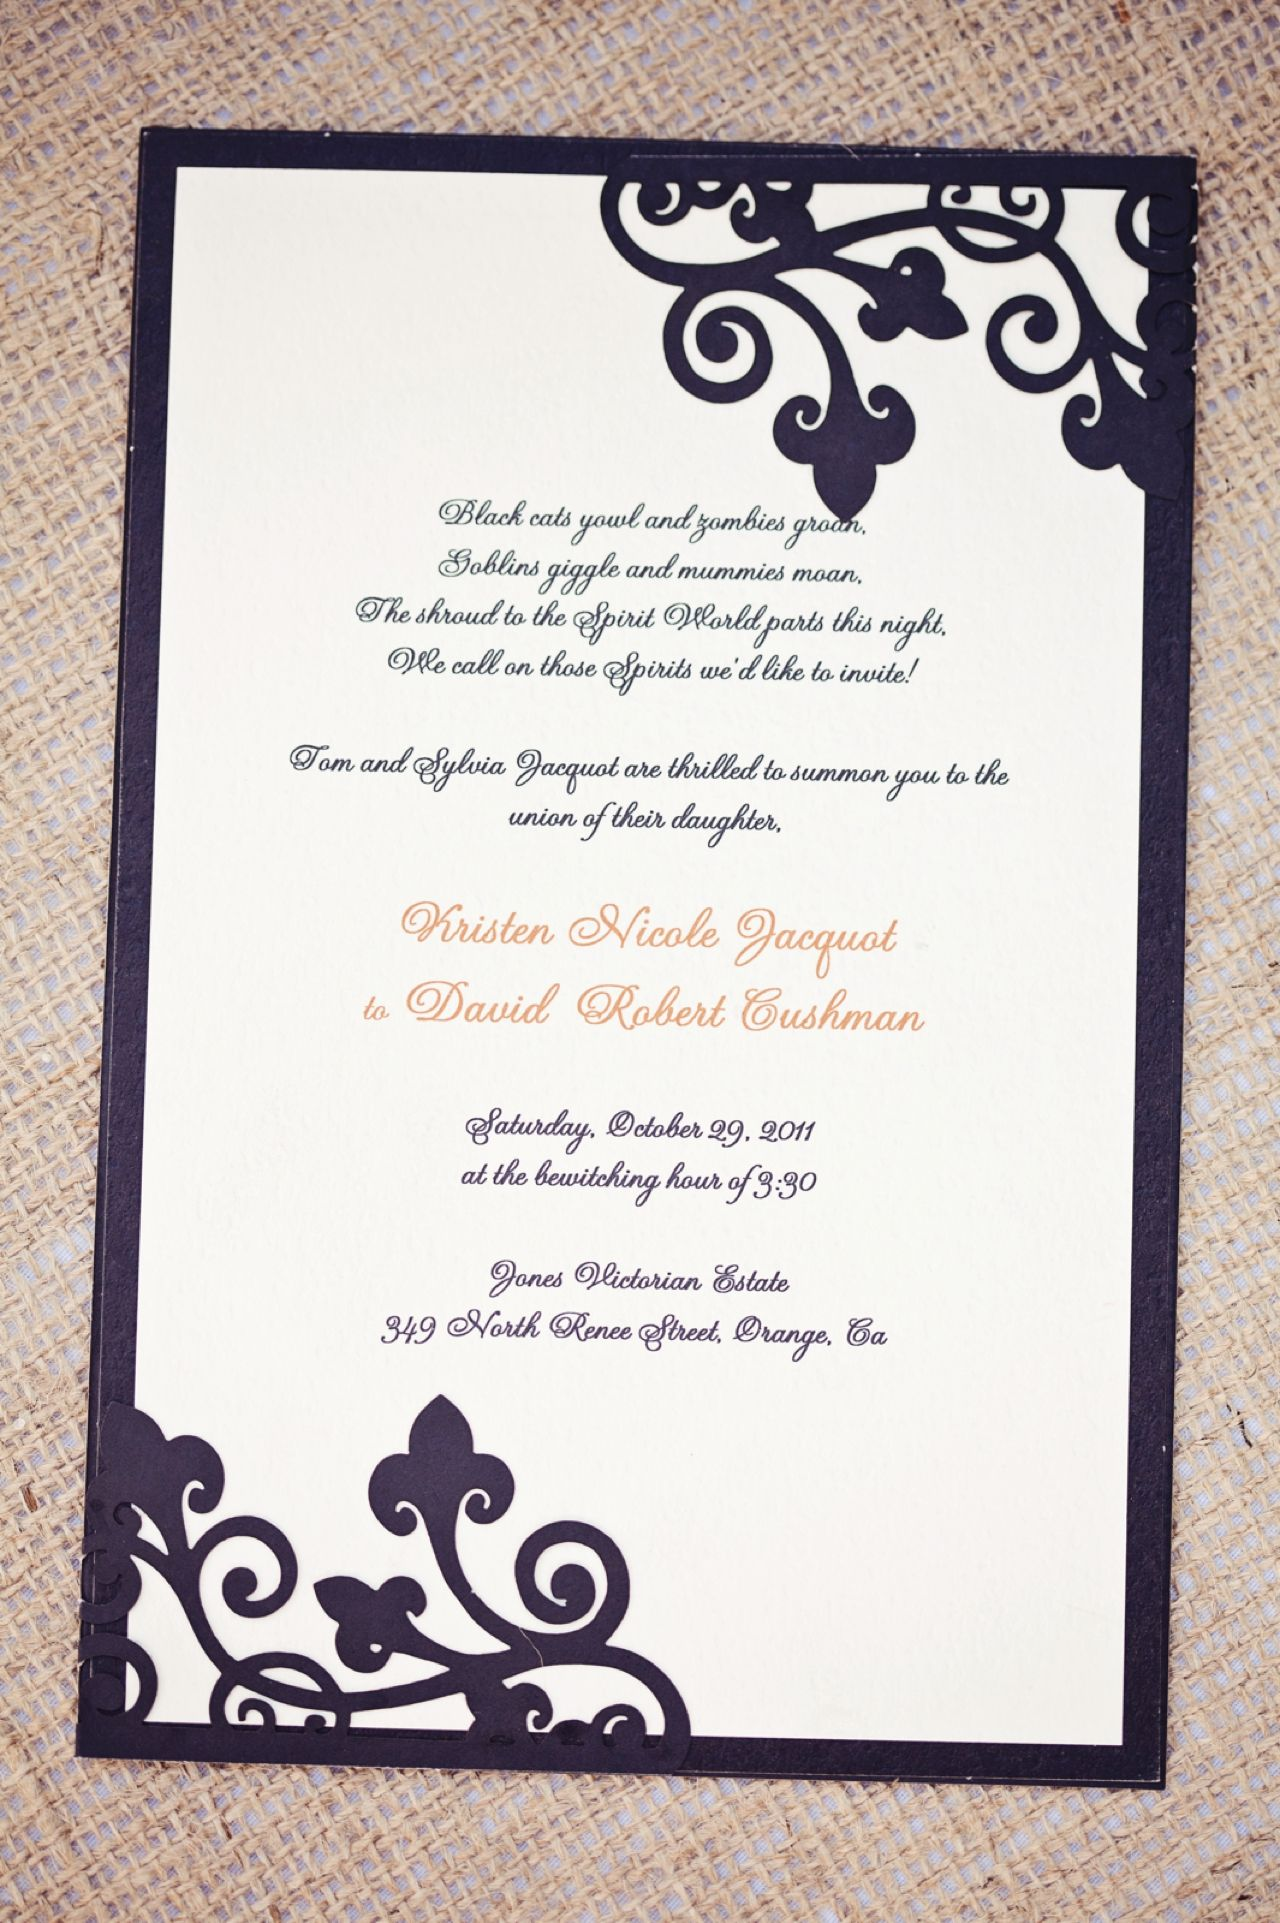 Halloween wedding invitations | Wedding Theme: Halloween | Pinterest ...